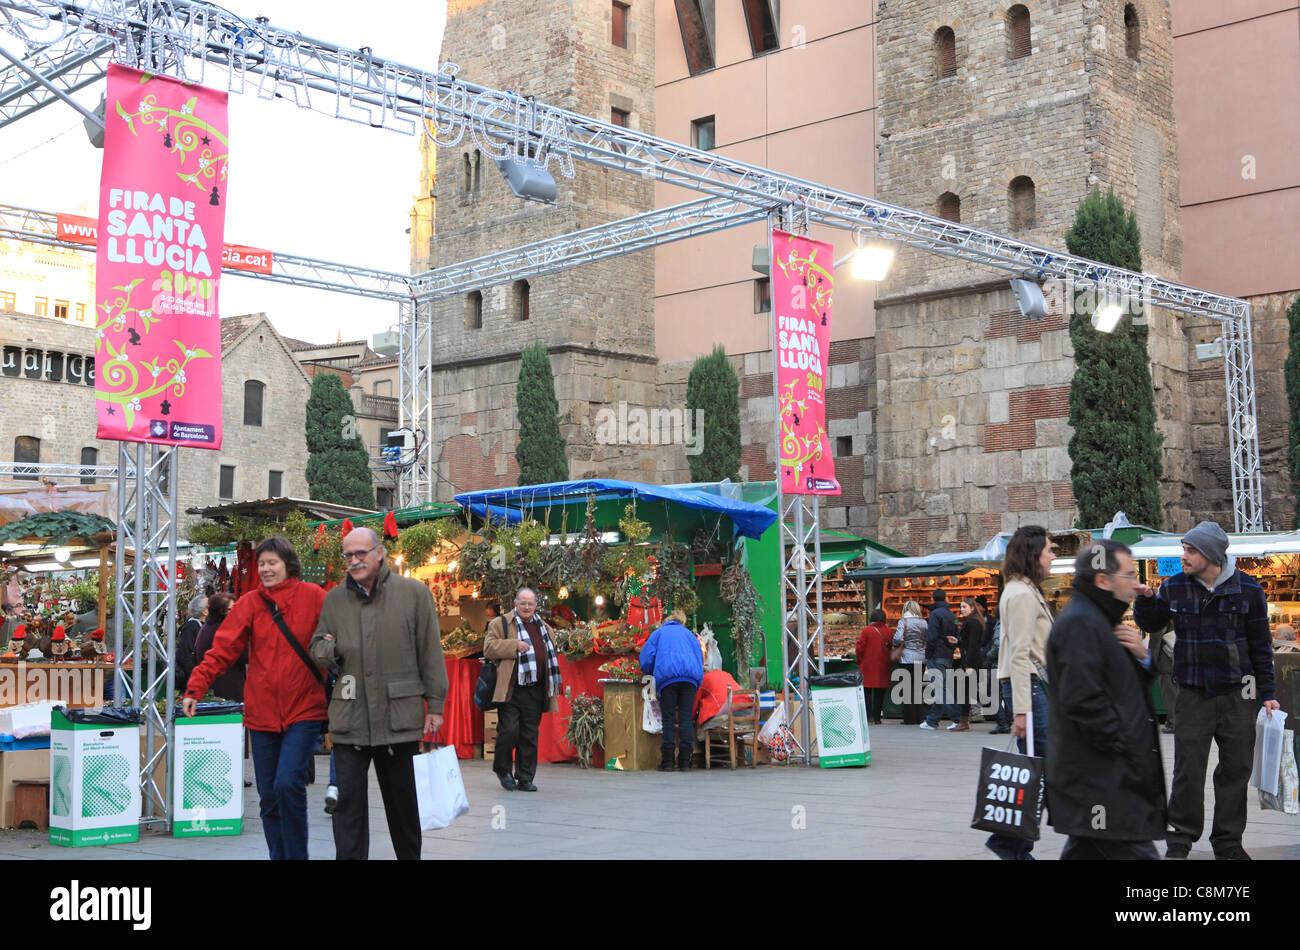 The Christmas market, Fira de Santa Llucia in front of the Cathedral, on Placa de la Seu, in the Gothic Quarter, - Stock Image